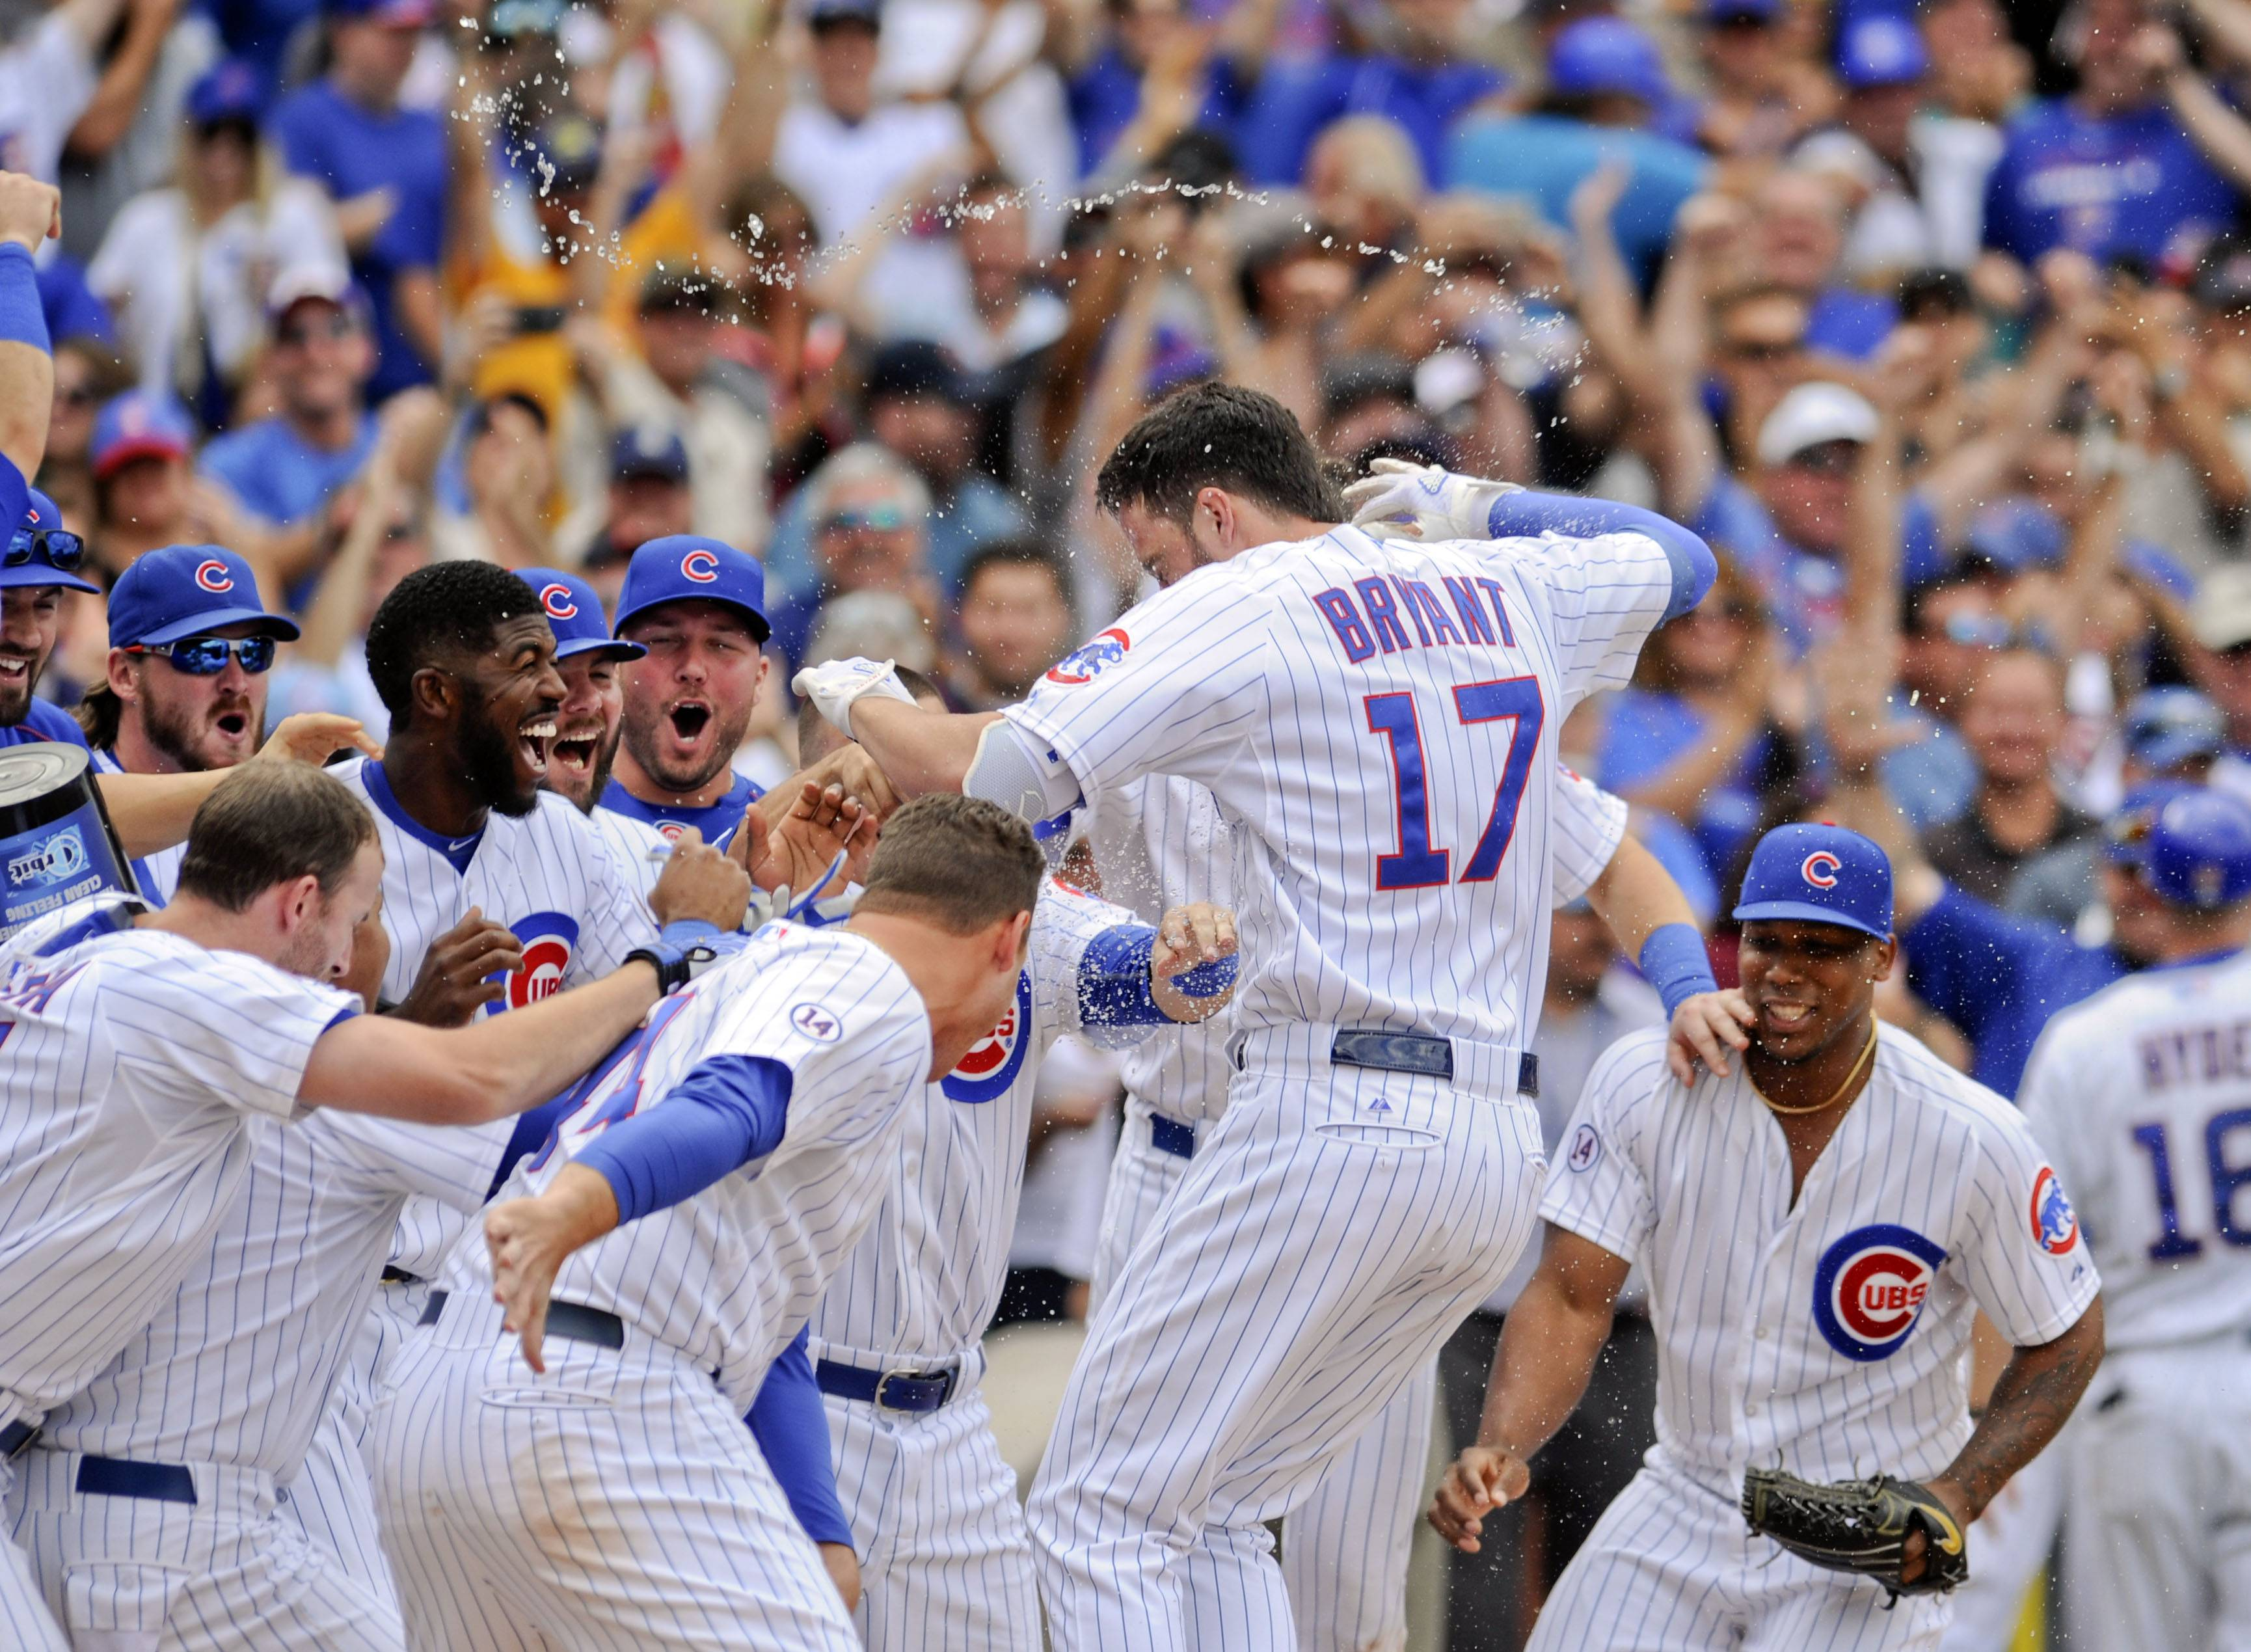 Images: Chicago Cubs third baseman Kris Bryant's year